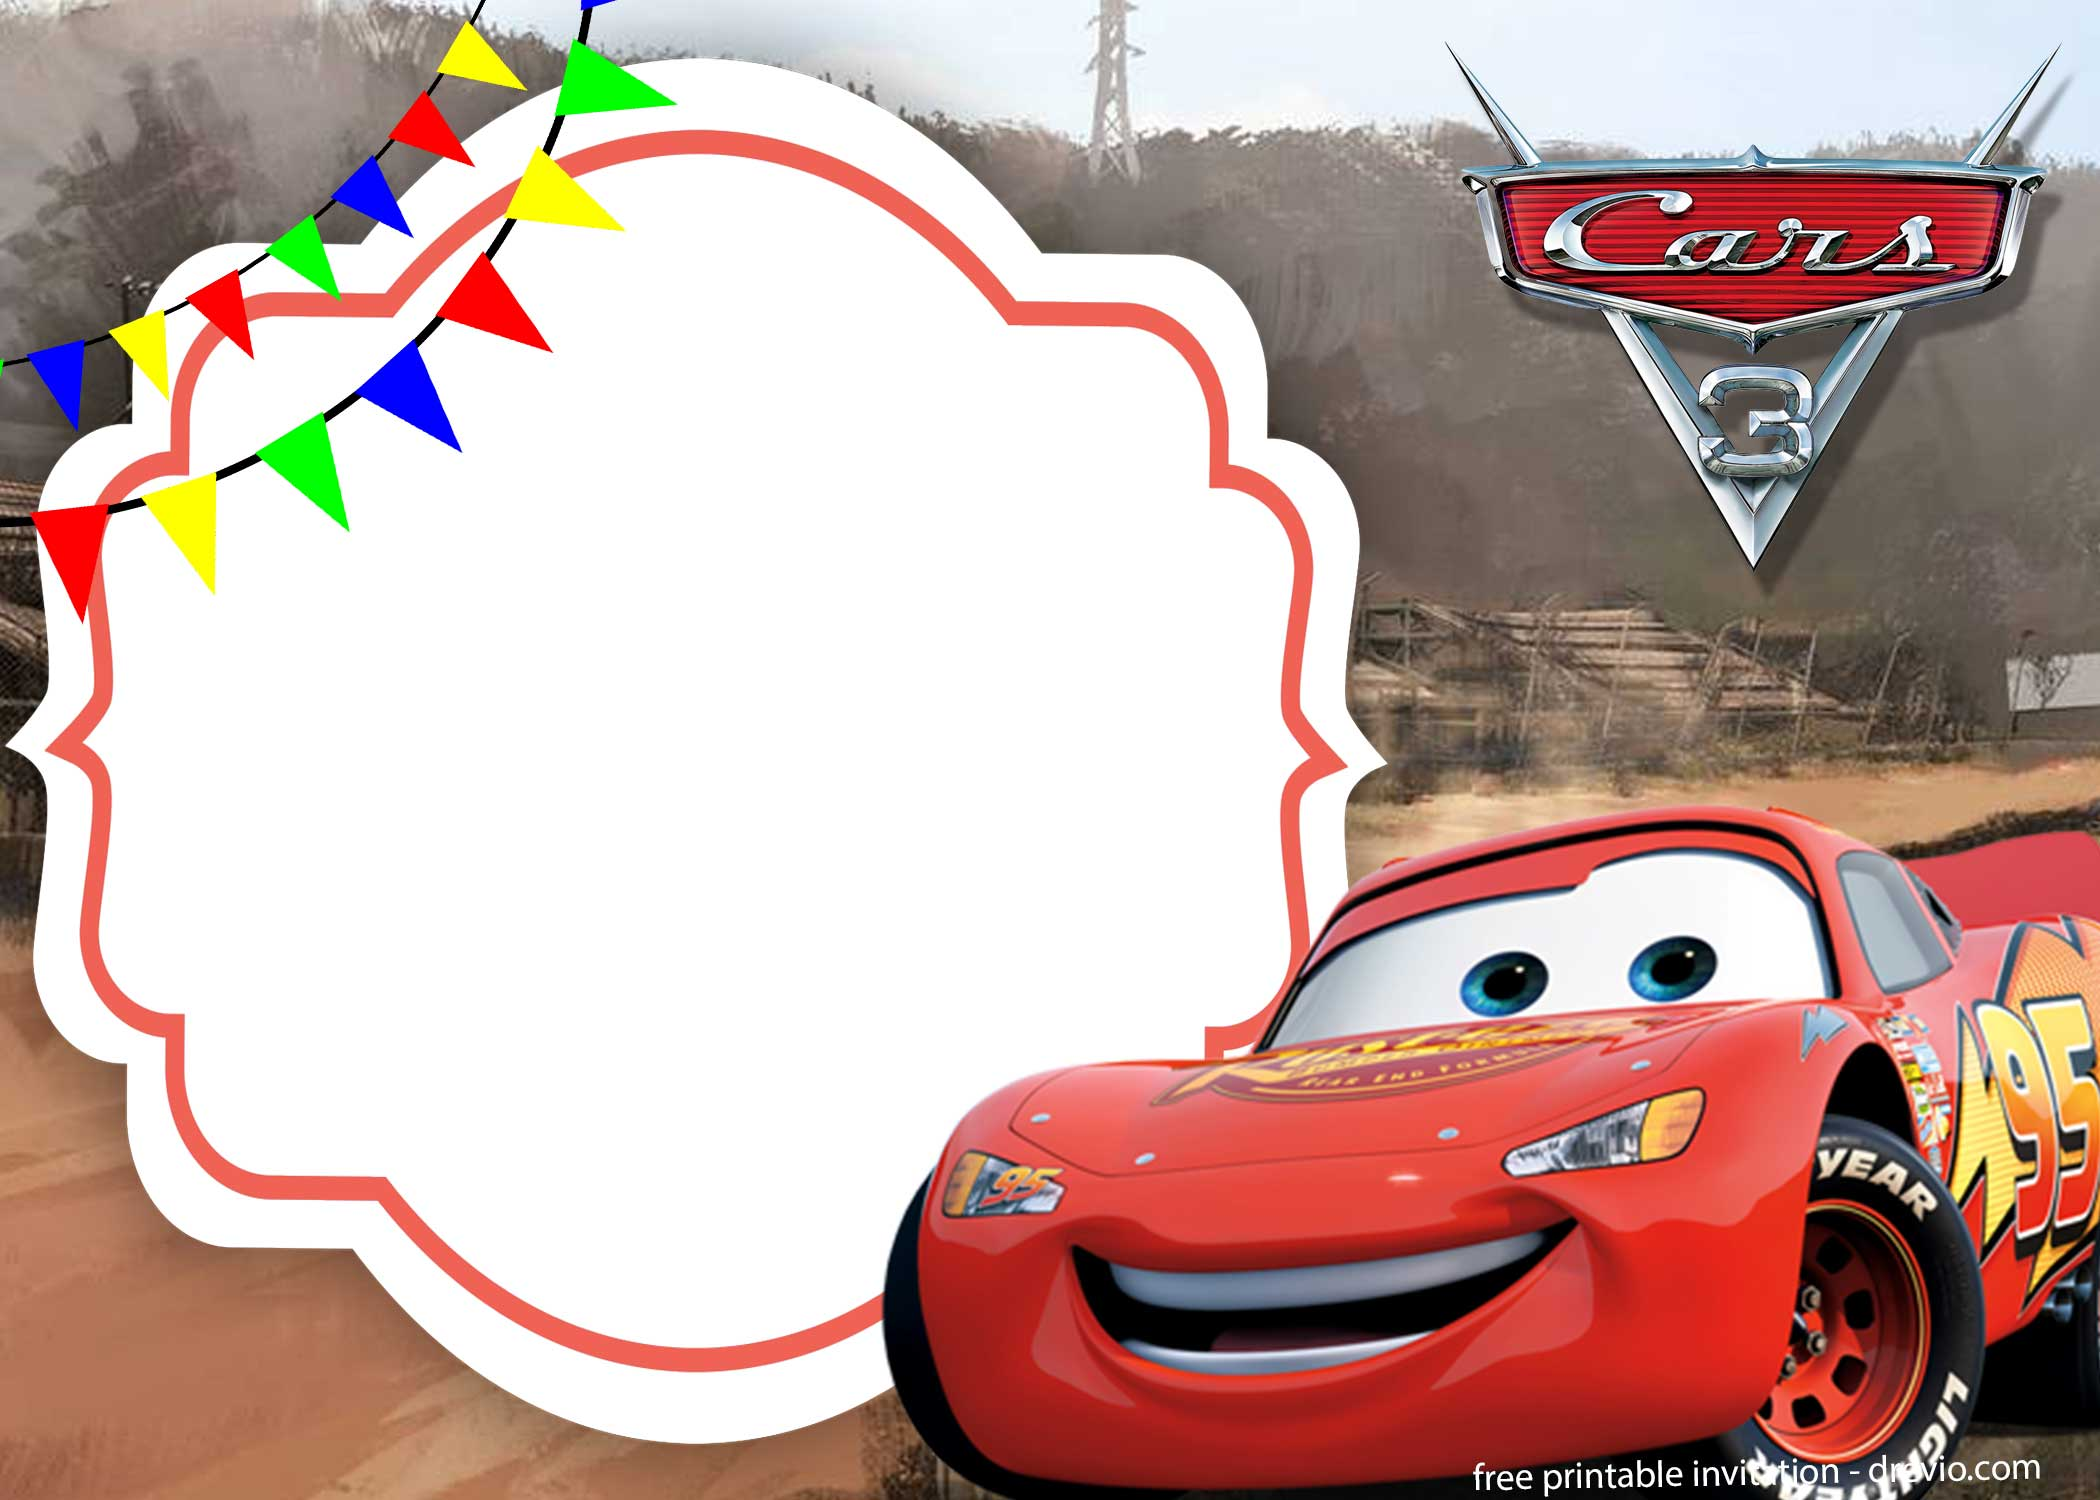 cars 3 invitation template how to